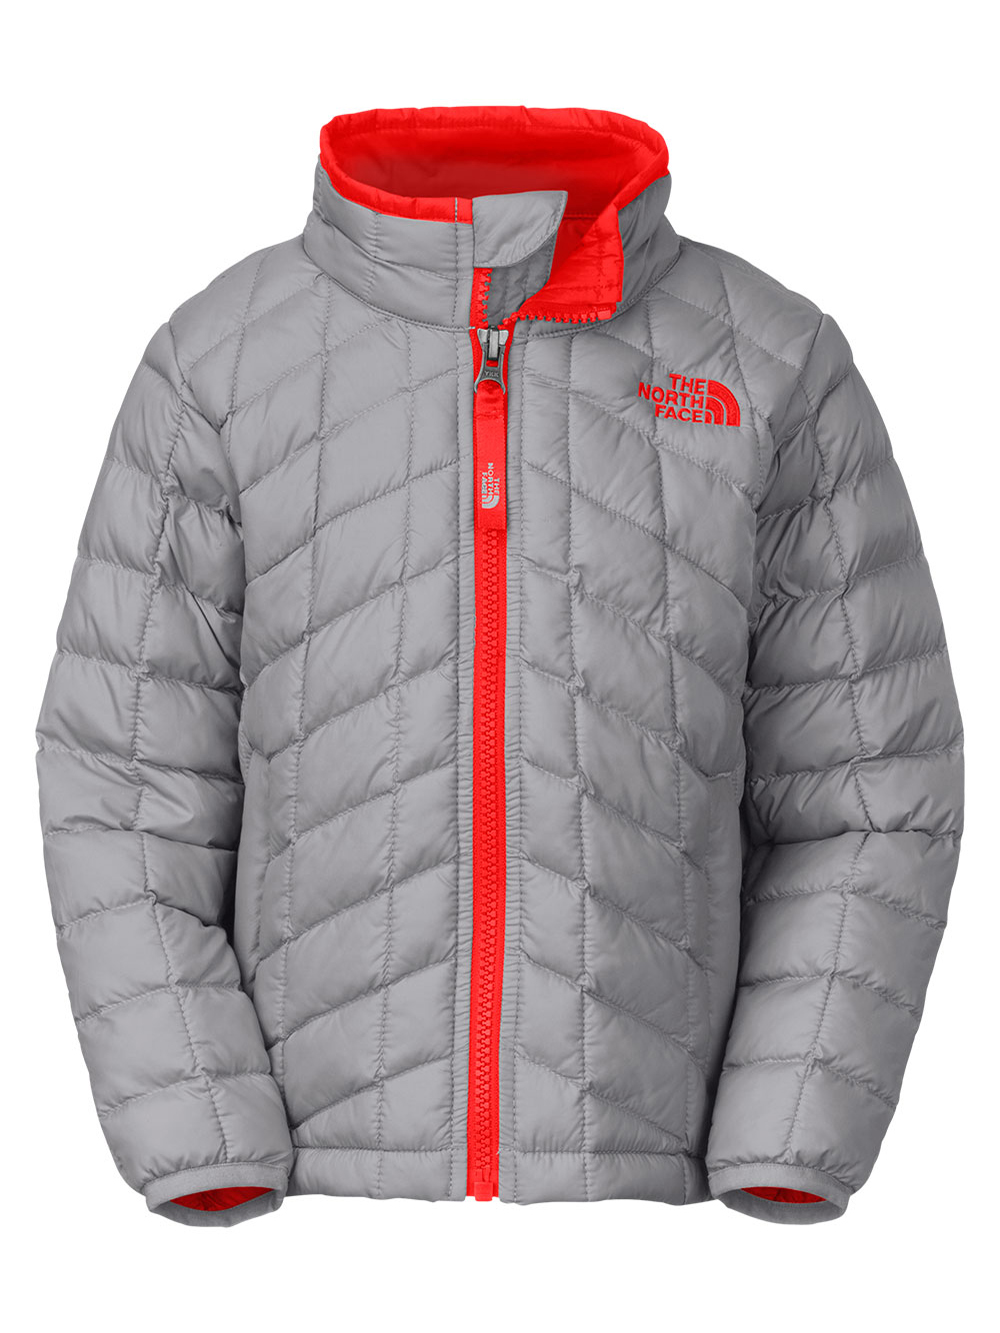 The North Face Little Boys' Toddler Thermoball Jacket (Sizes 2T - 4T)